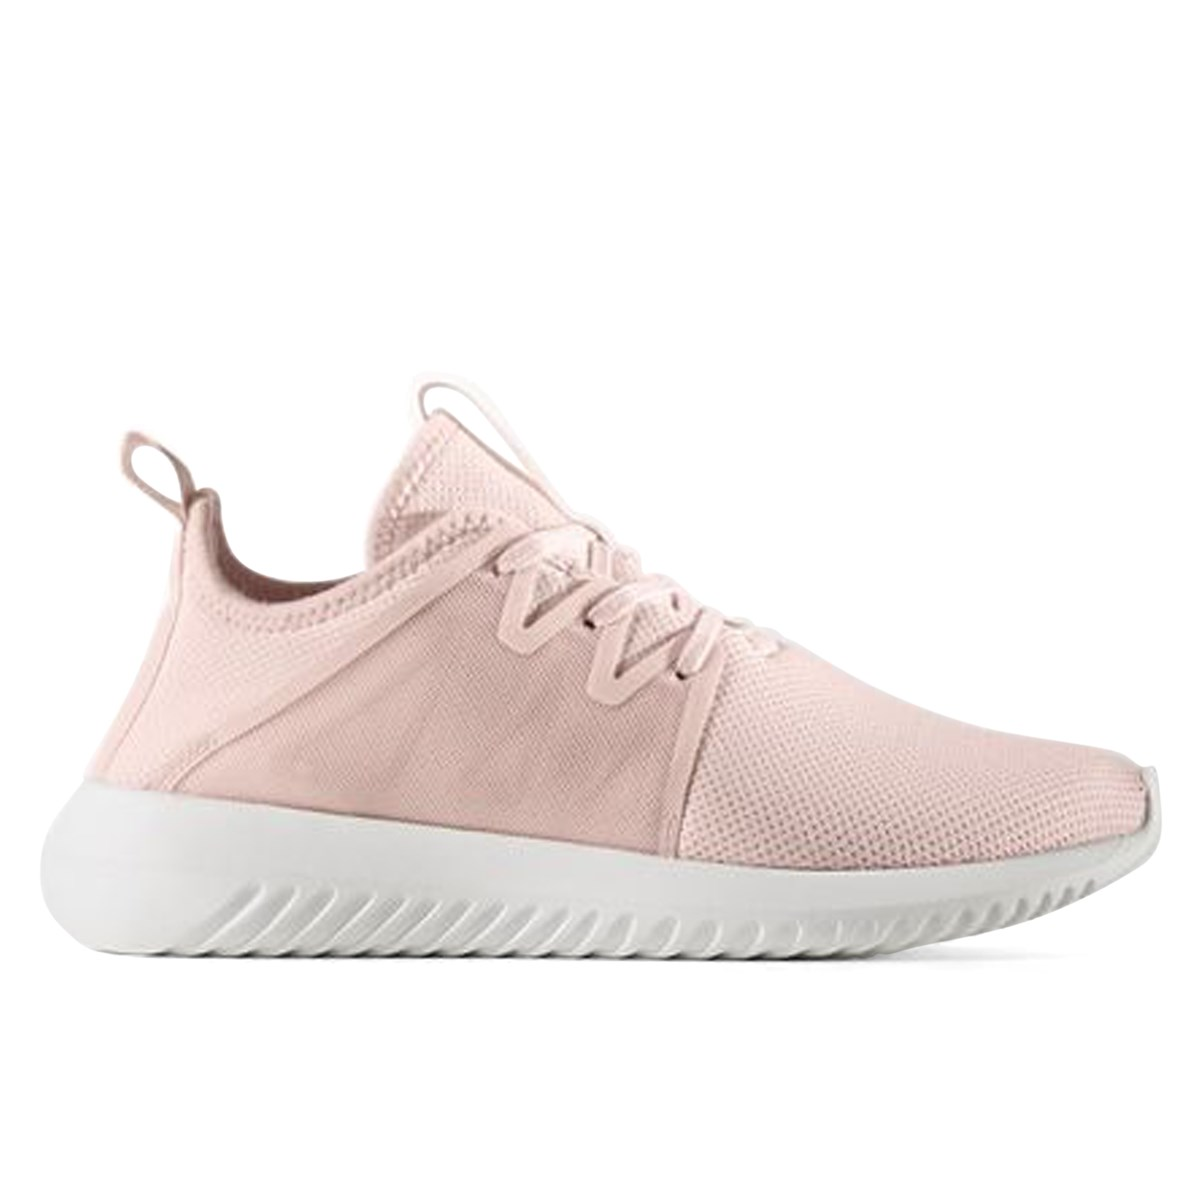 Women's Tubular Viral 2 Light Pink Sneaker